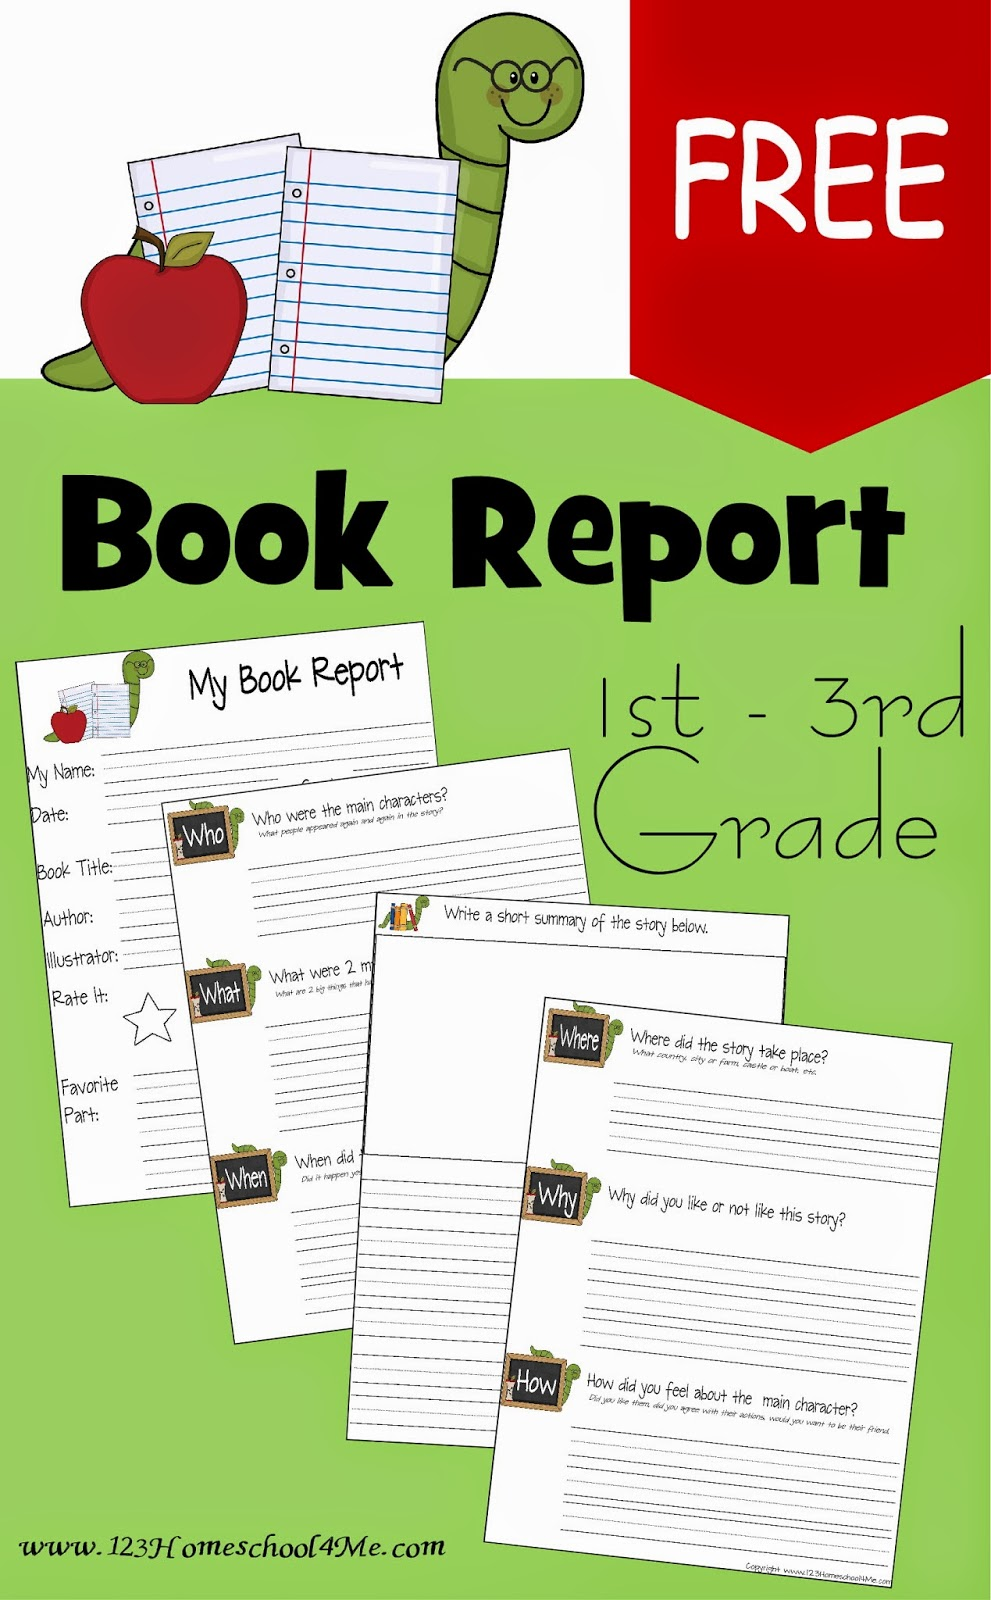 good books for grade 8 book reports Free simple book report k-5th grade why book reports as your elementary student is reading more complex books i find book reports do such a good job of helping them retain what they read, process what they read, and practice writing.